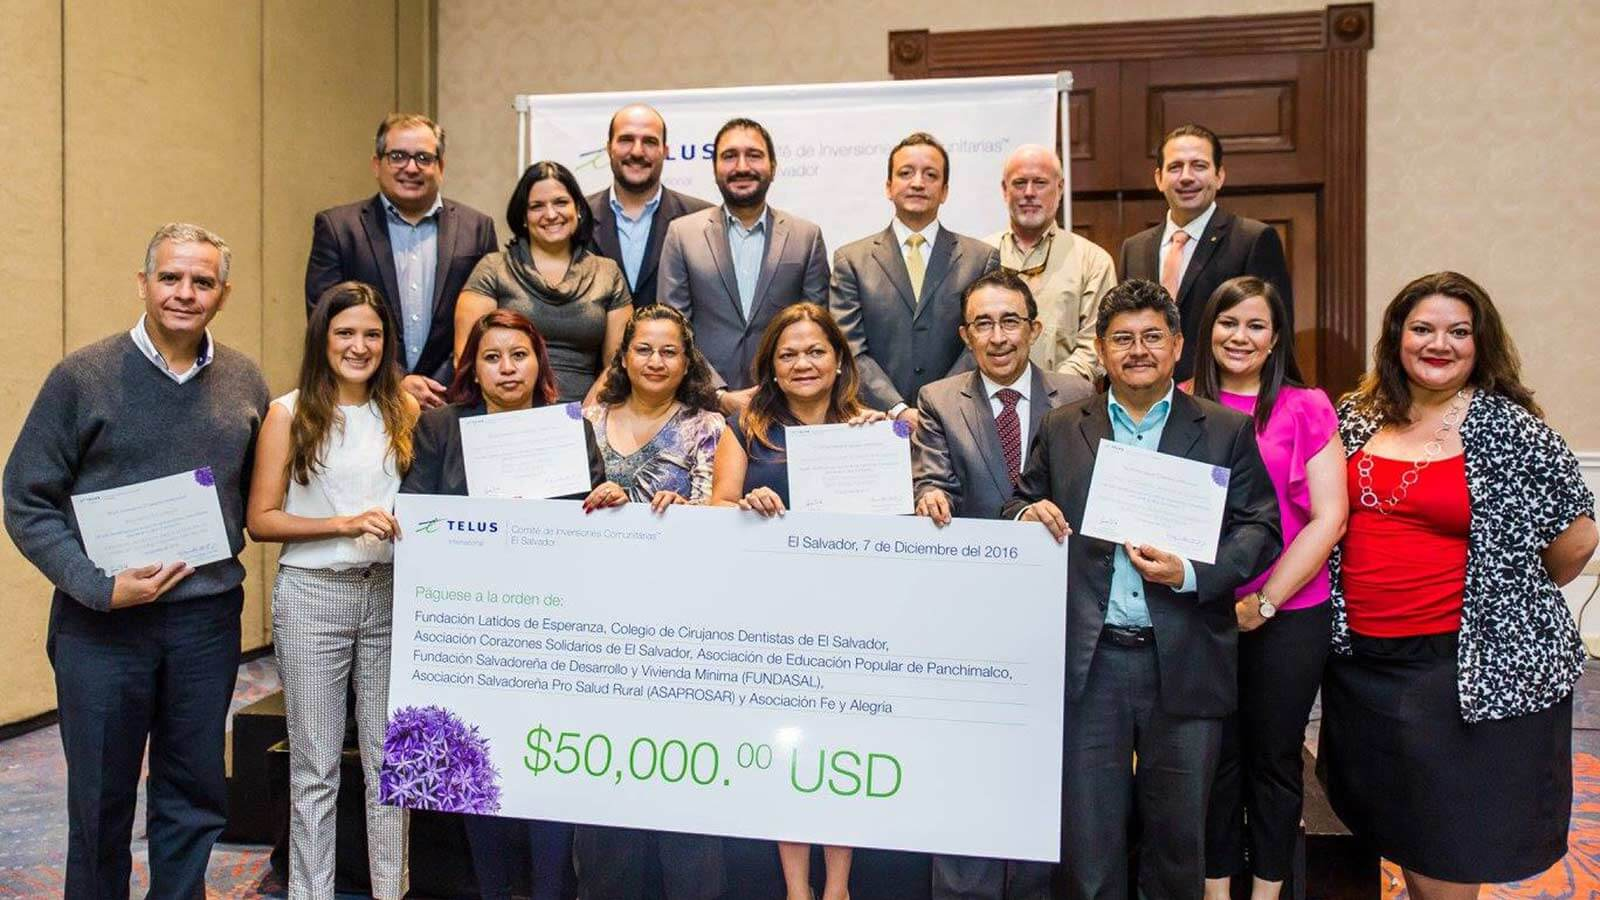 A group of people smiling and holding a large $50,000 USD cheque